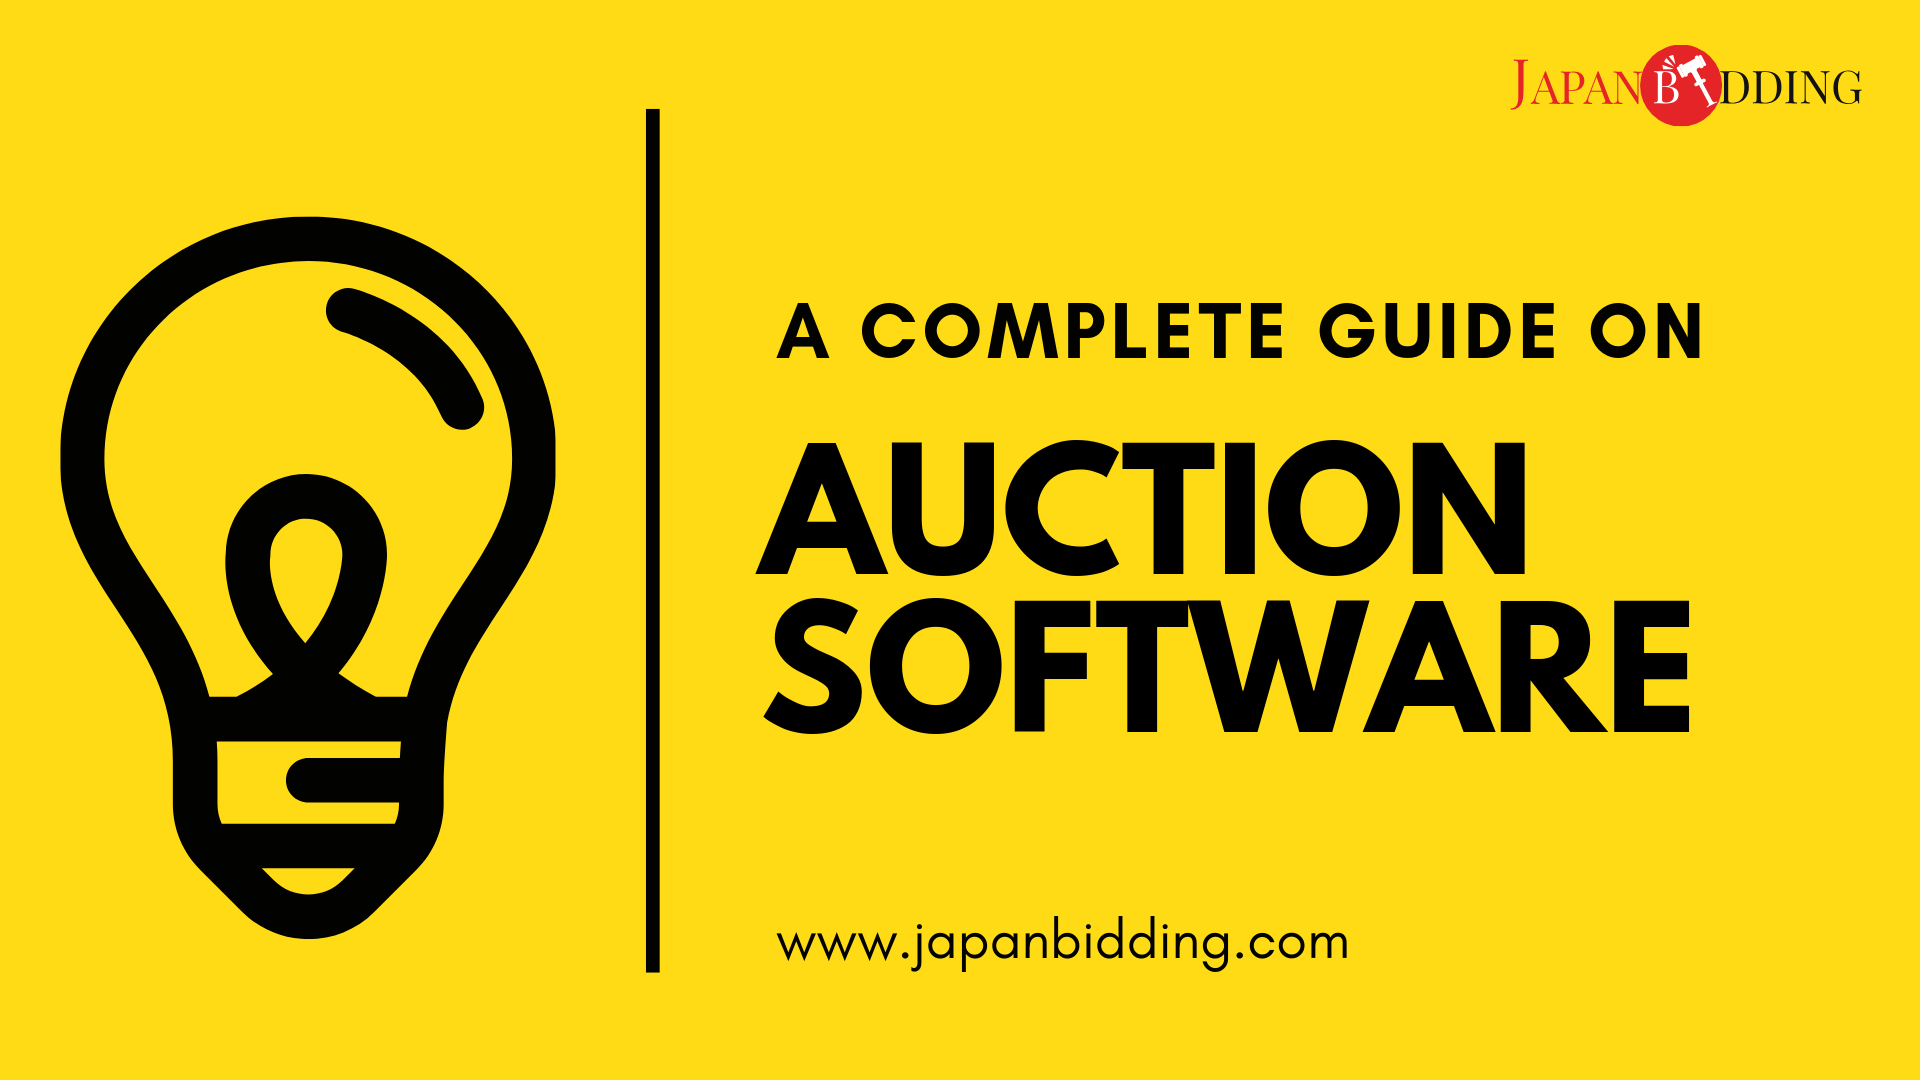 A Complete Guide On Auction Software